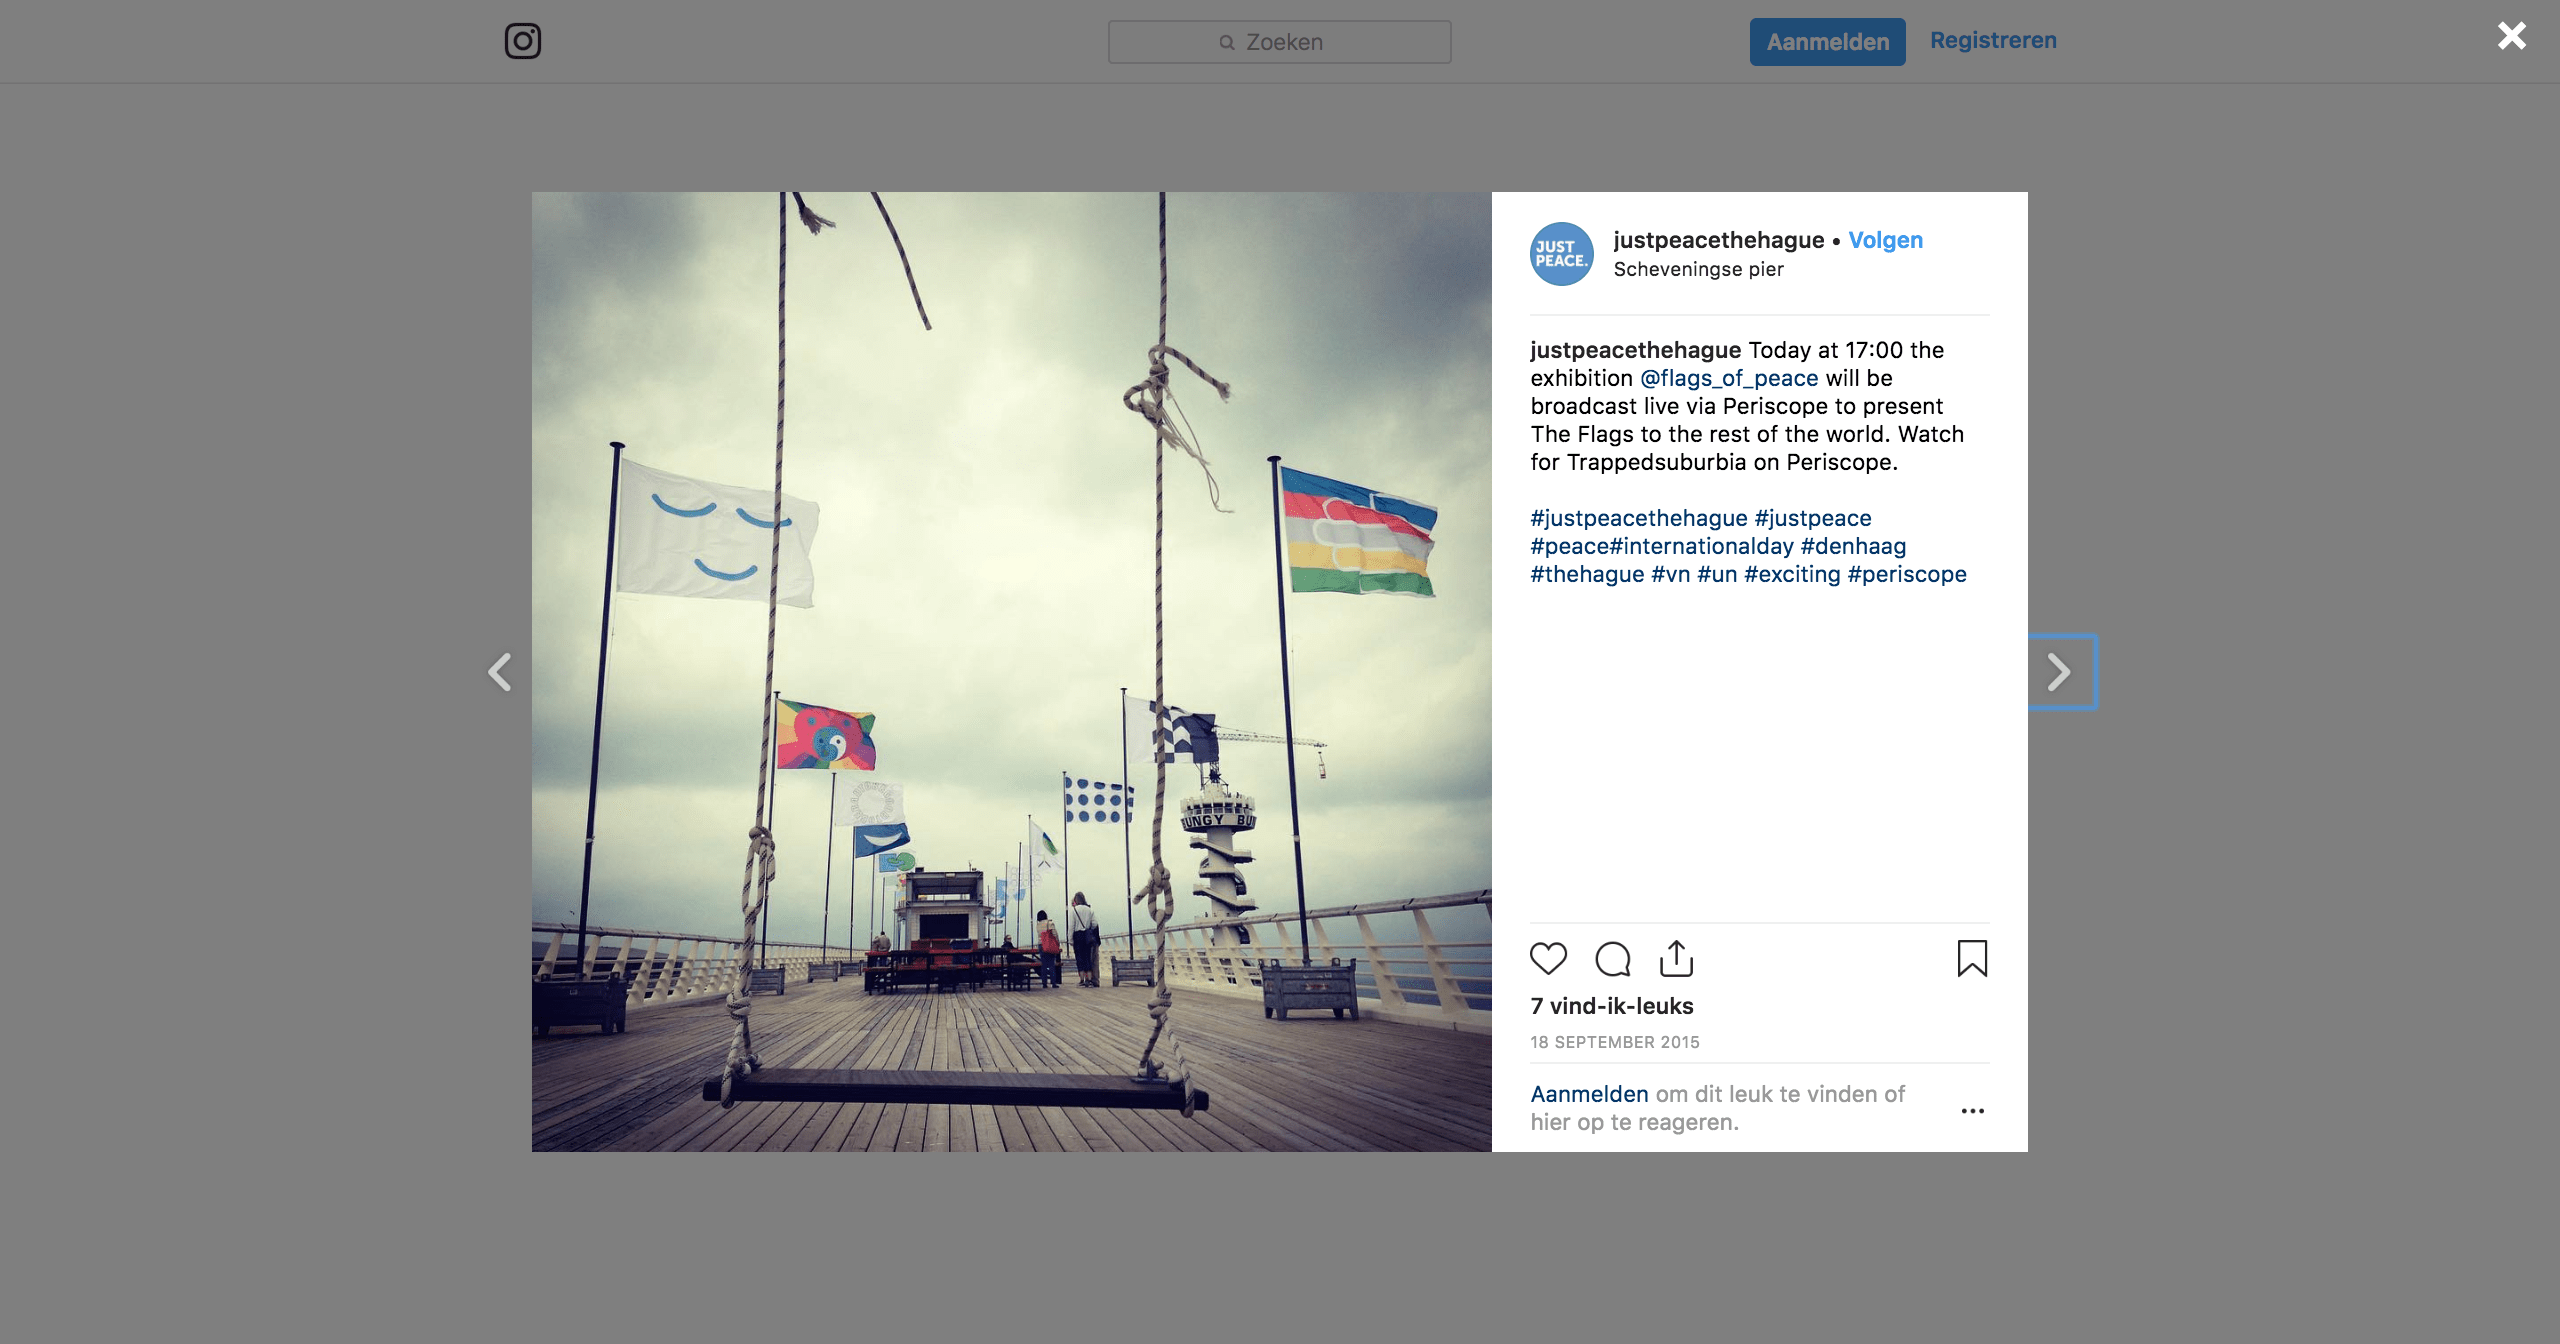 Instagrambericht over Flags of Peace tijdens Just Peace